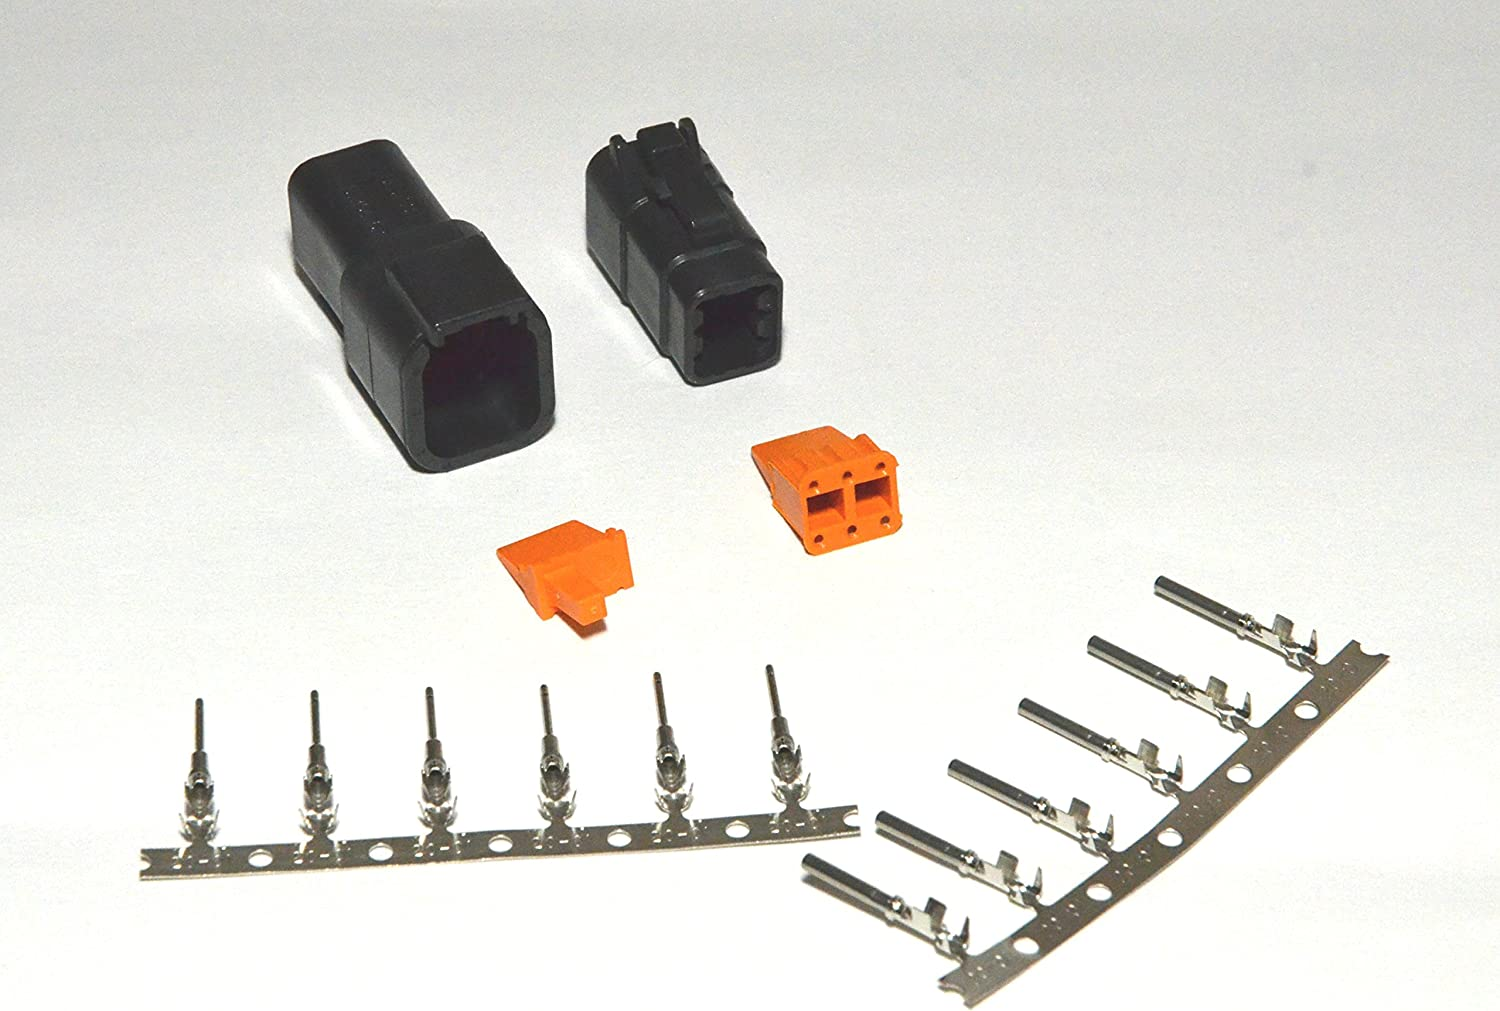 Deutsch DT 6-Pin Black /& Gray Connector Kit USA 14-16AWG Stamped Pins